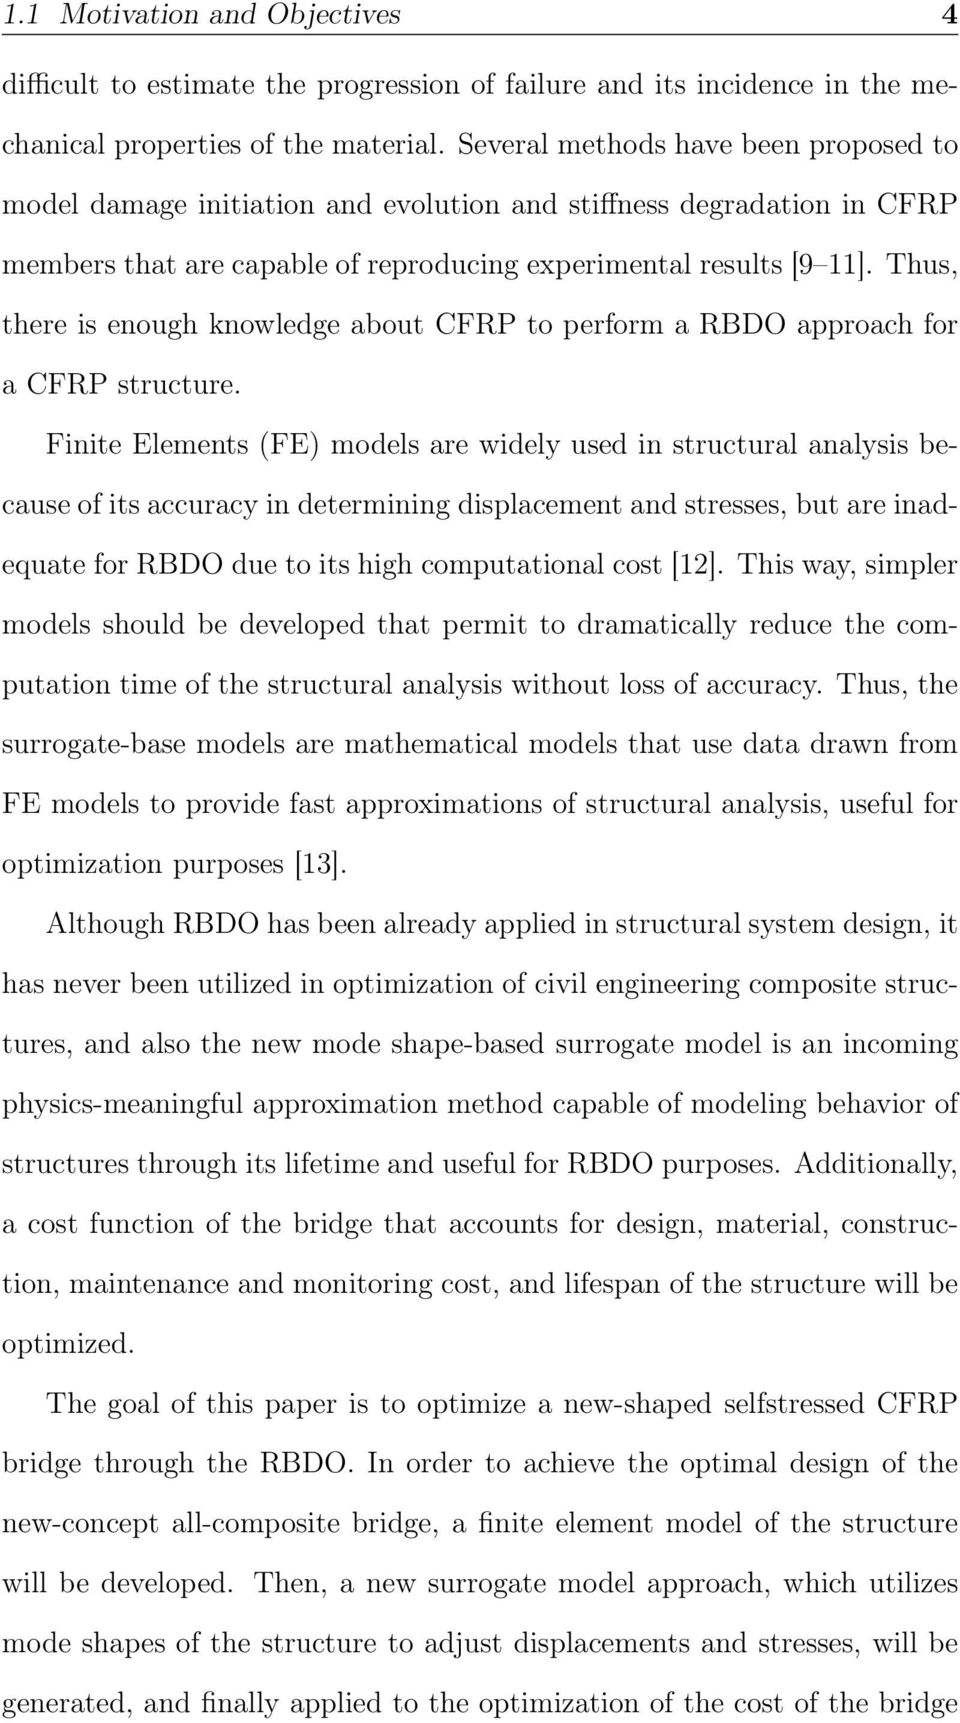 Thus, there is enough knowledge about CFRP to perform a RBDO approach for a CFRP structure.